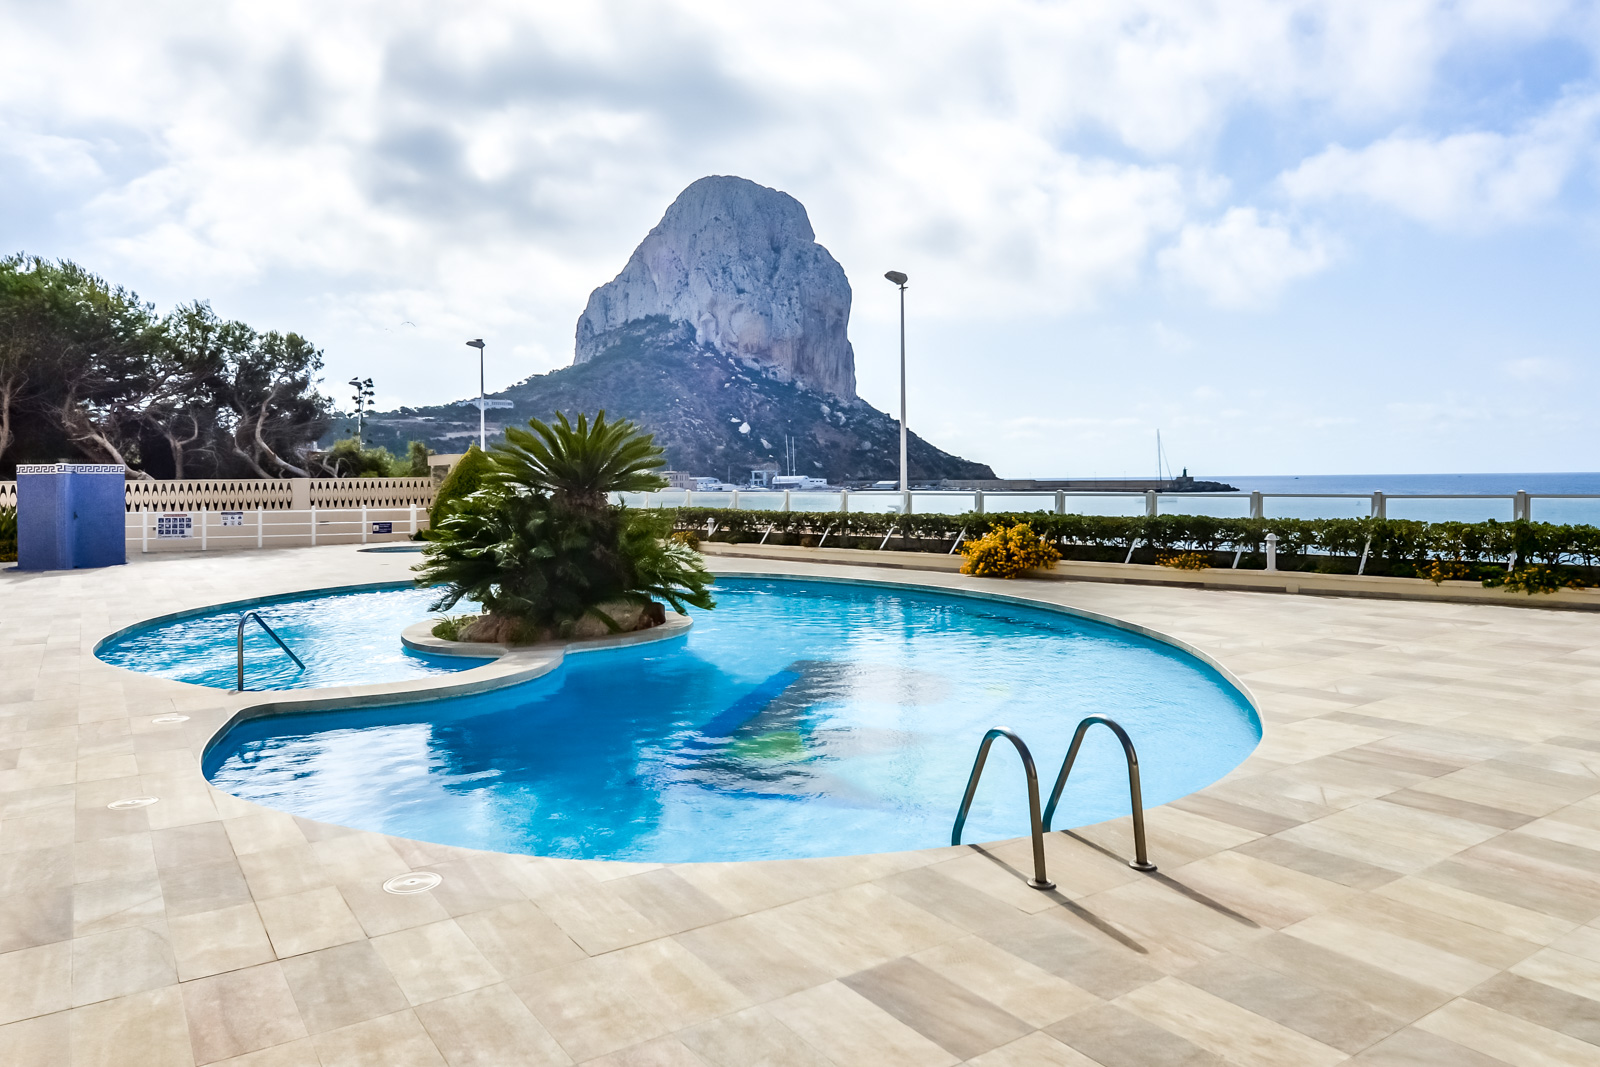 Apartamento Rubino 4B, Apartment  with communal pool in Calpe, on the Costa Blanca, Spain for 3 persons.....